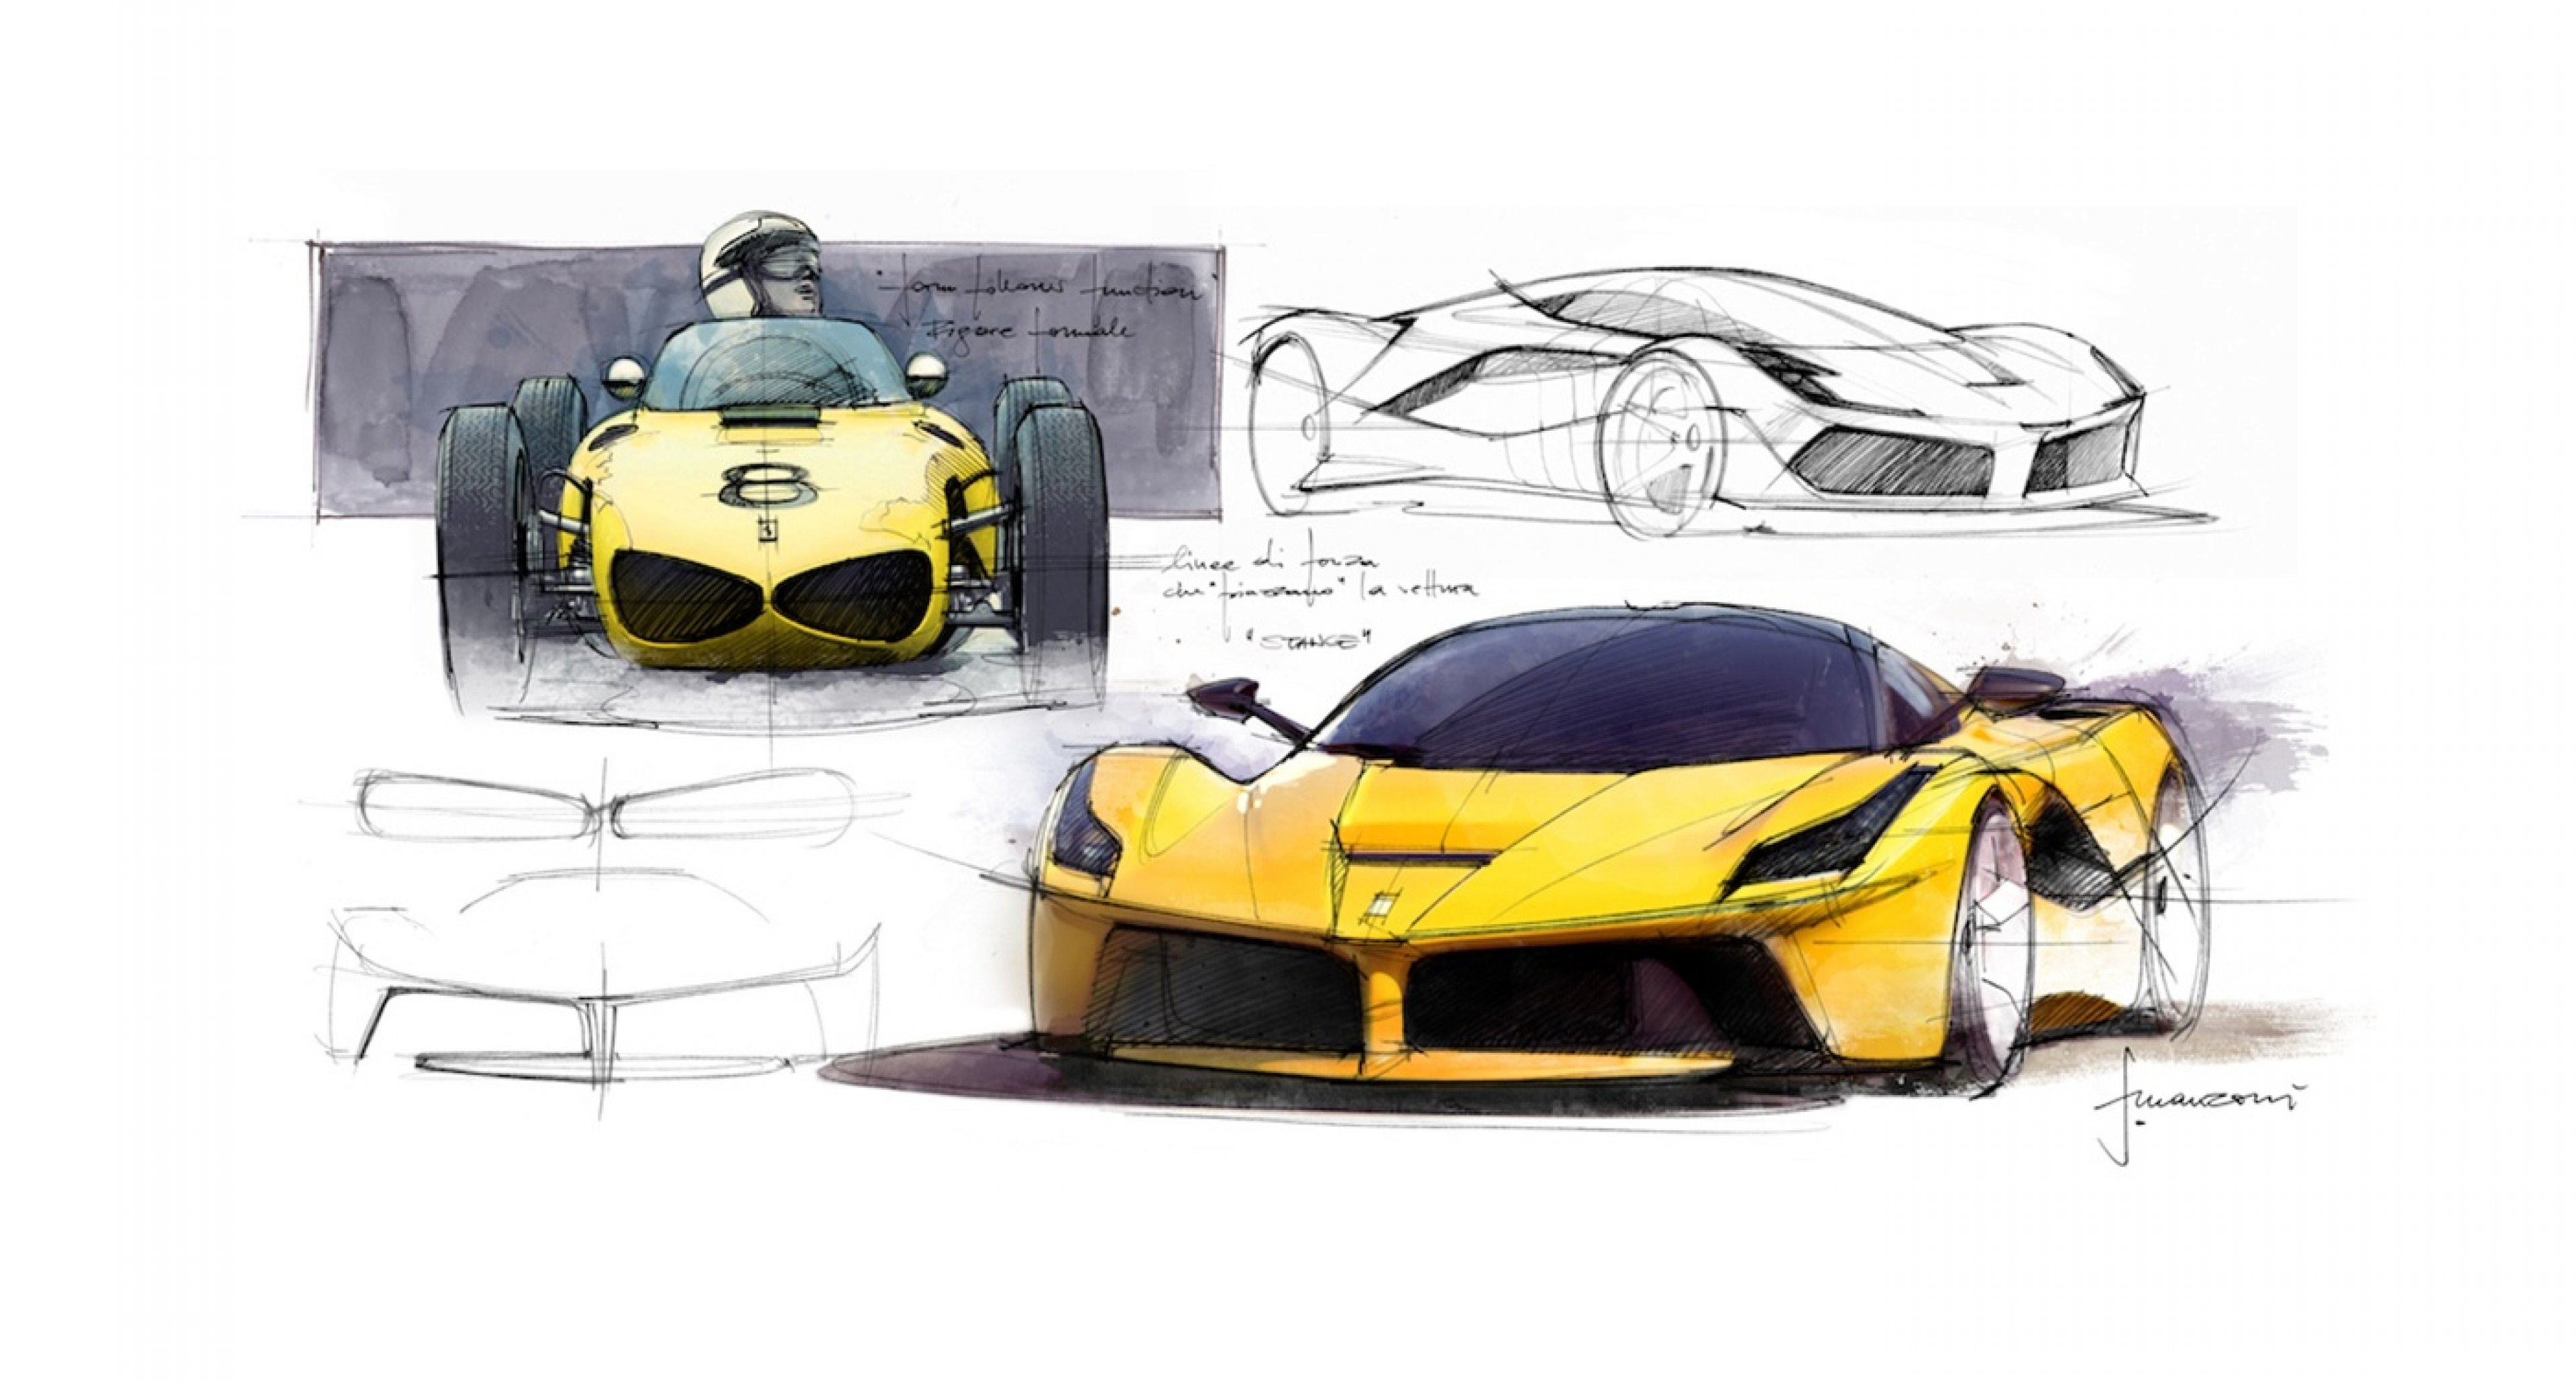 Drawings for LaFerrari by Flavio Manzoni and team.